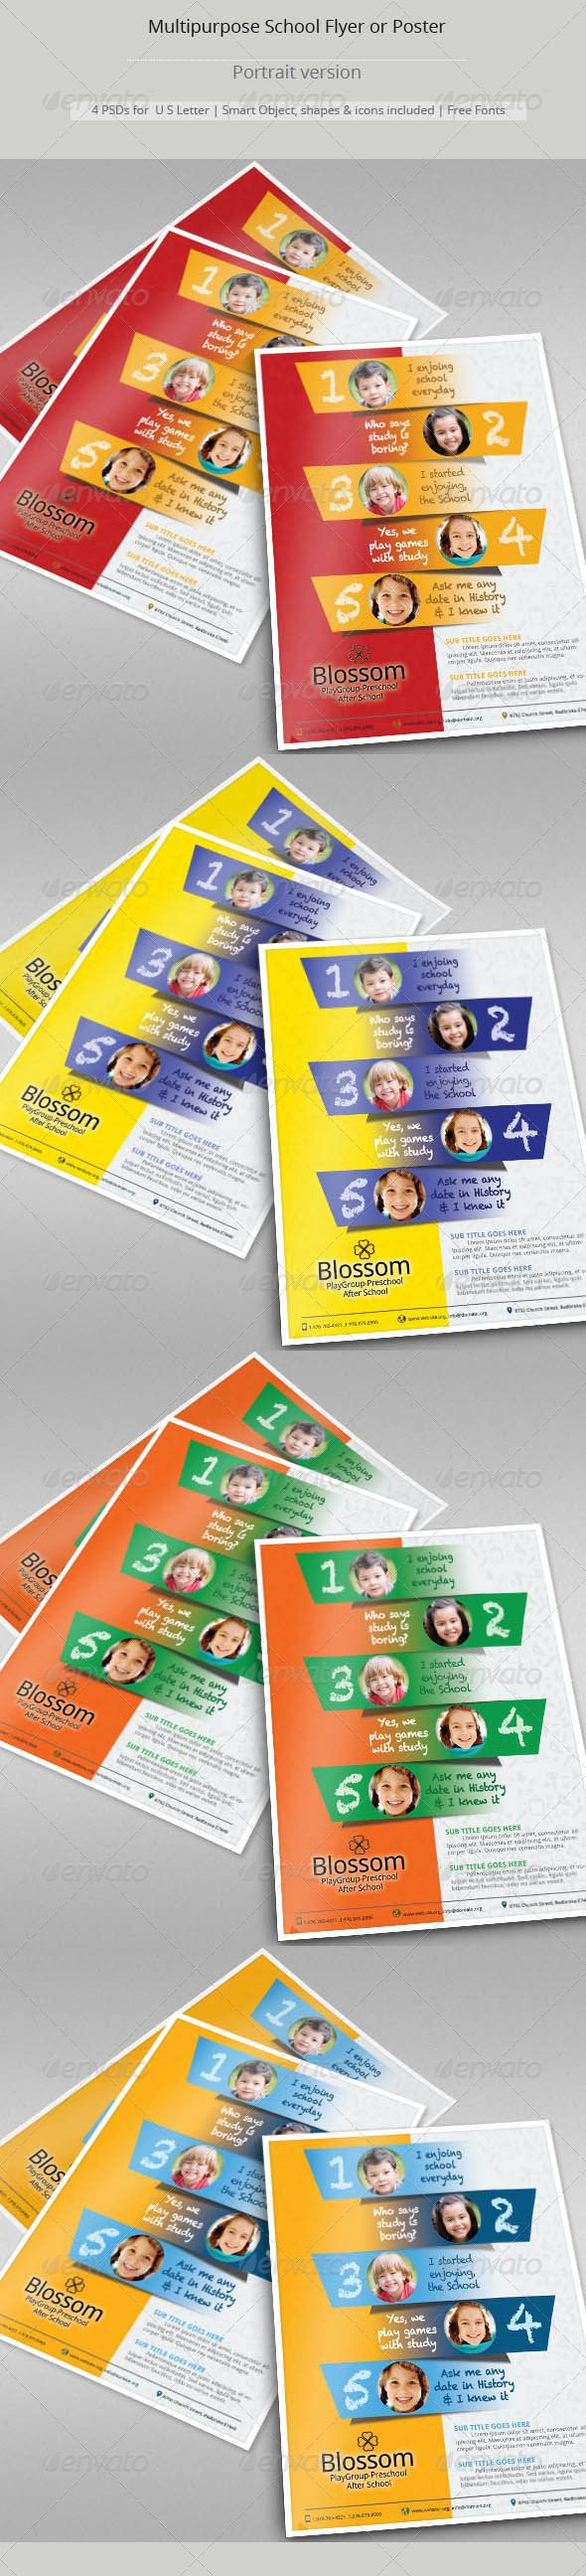 17 best images about editorial fonts flyer multipurpose school flyer templates